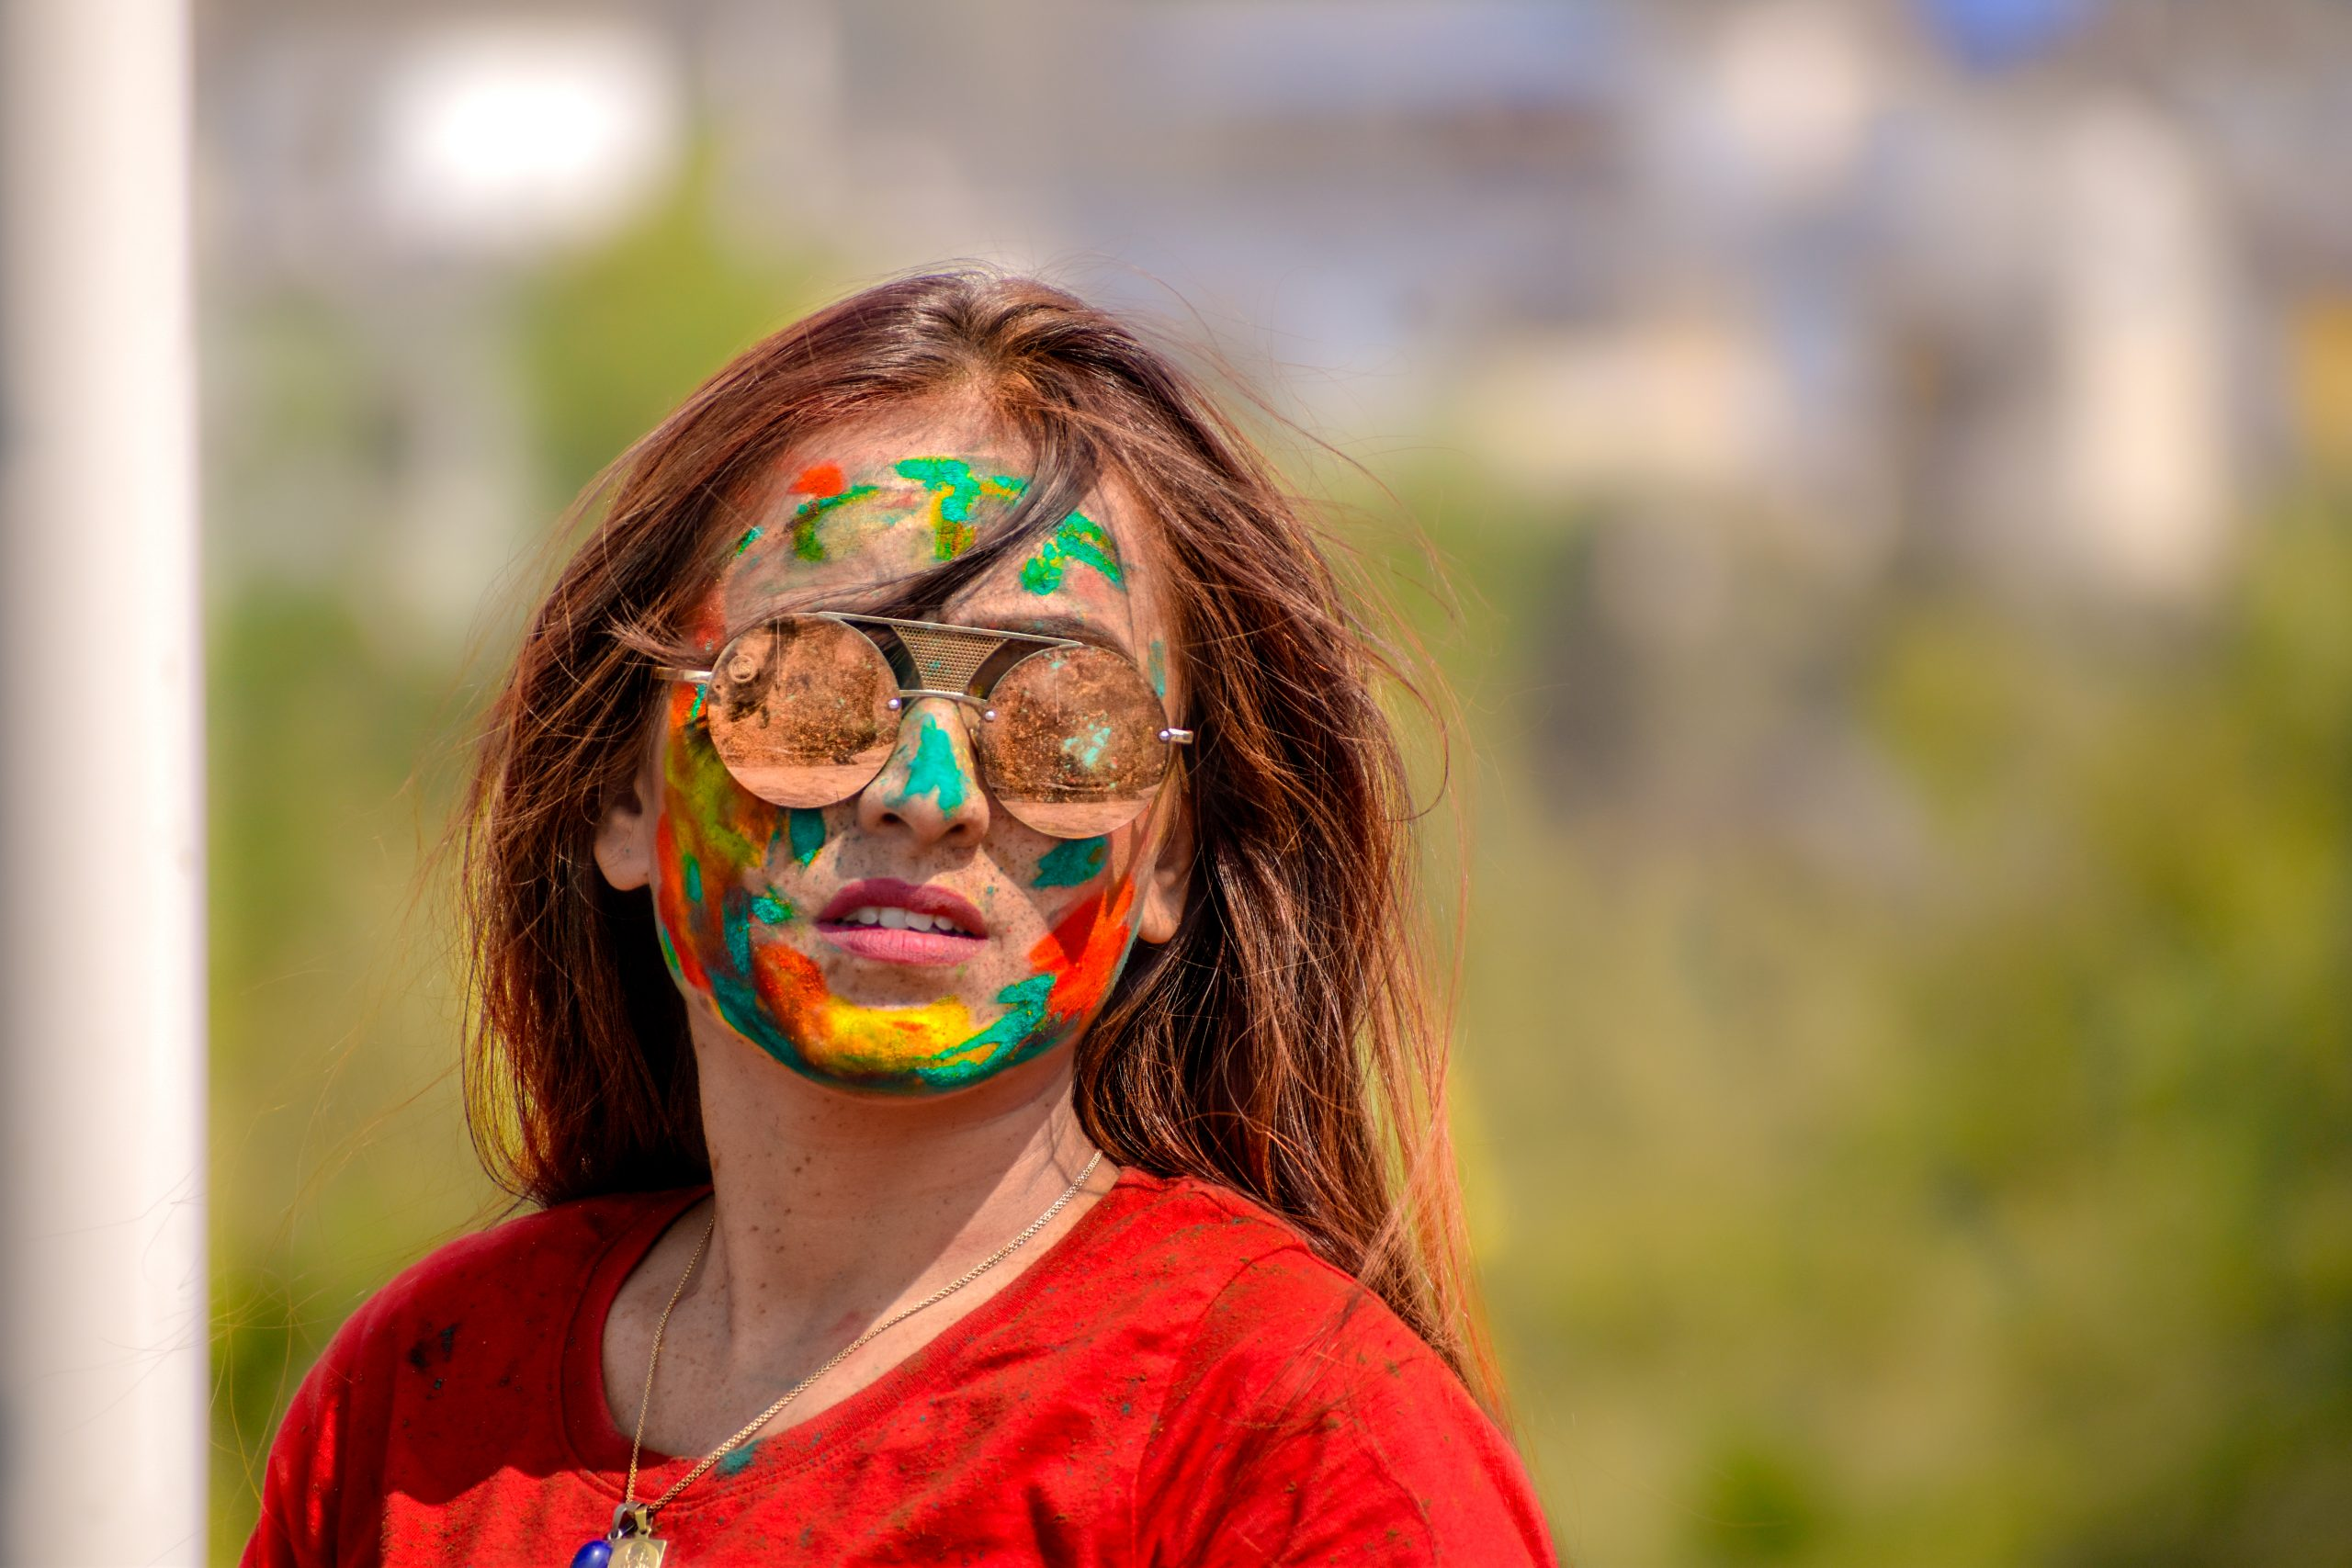 A girl's face painted with Holi colors